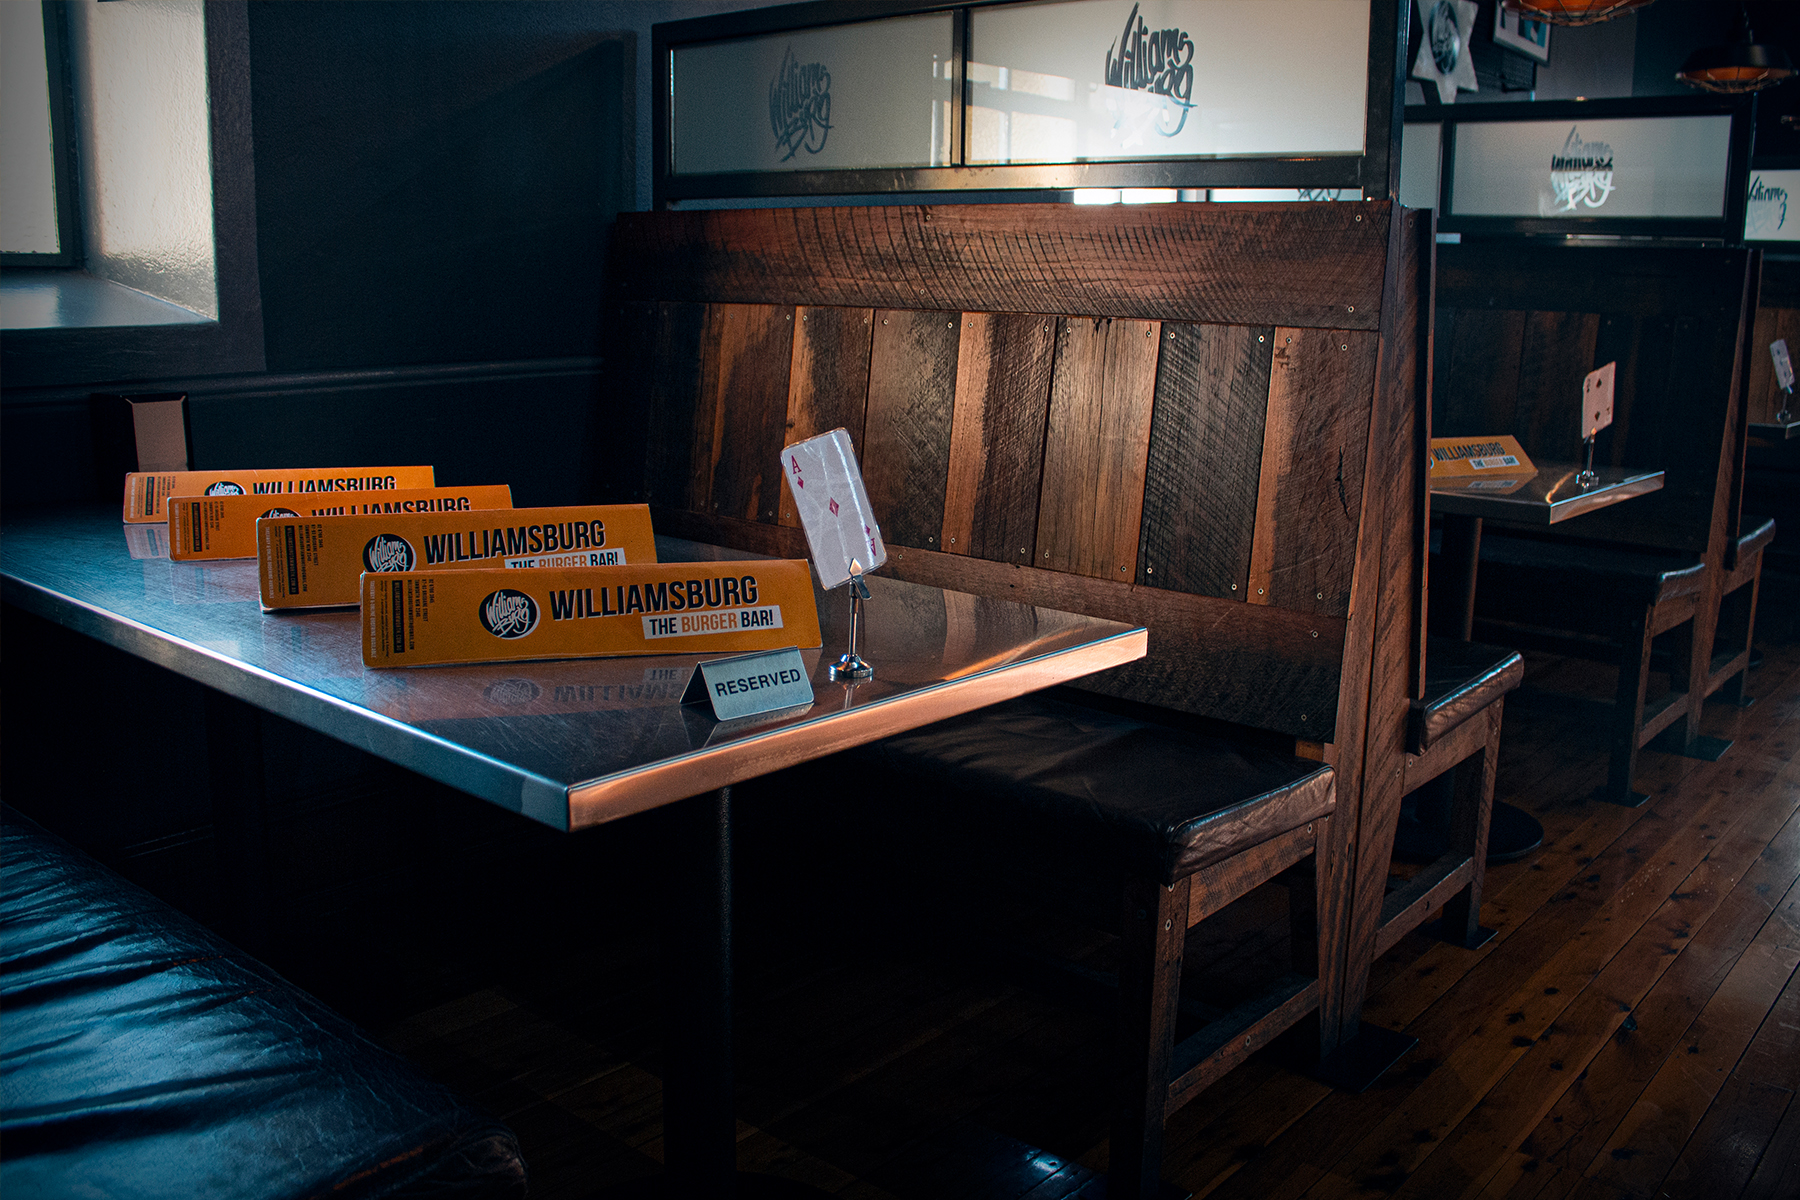 An empty booth at Williamsburg with some menus and a sign that reads reserved.